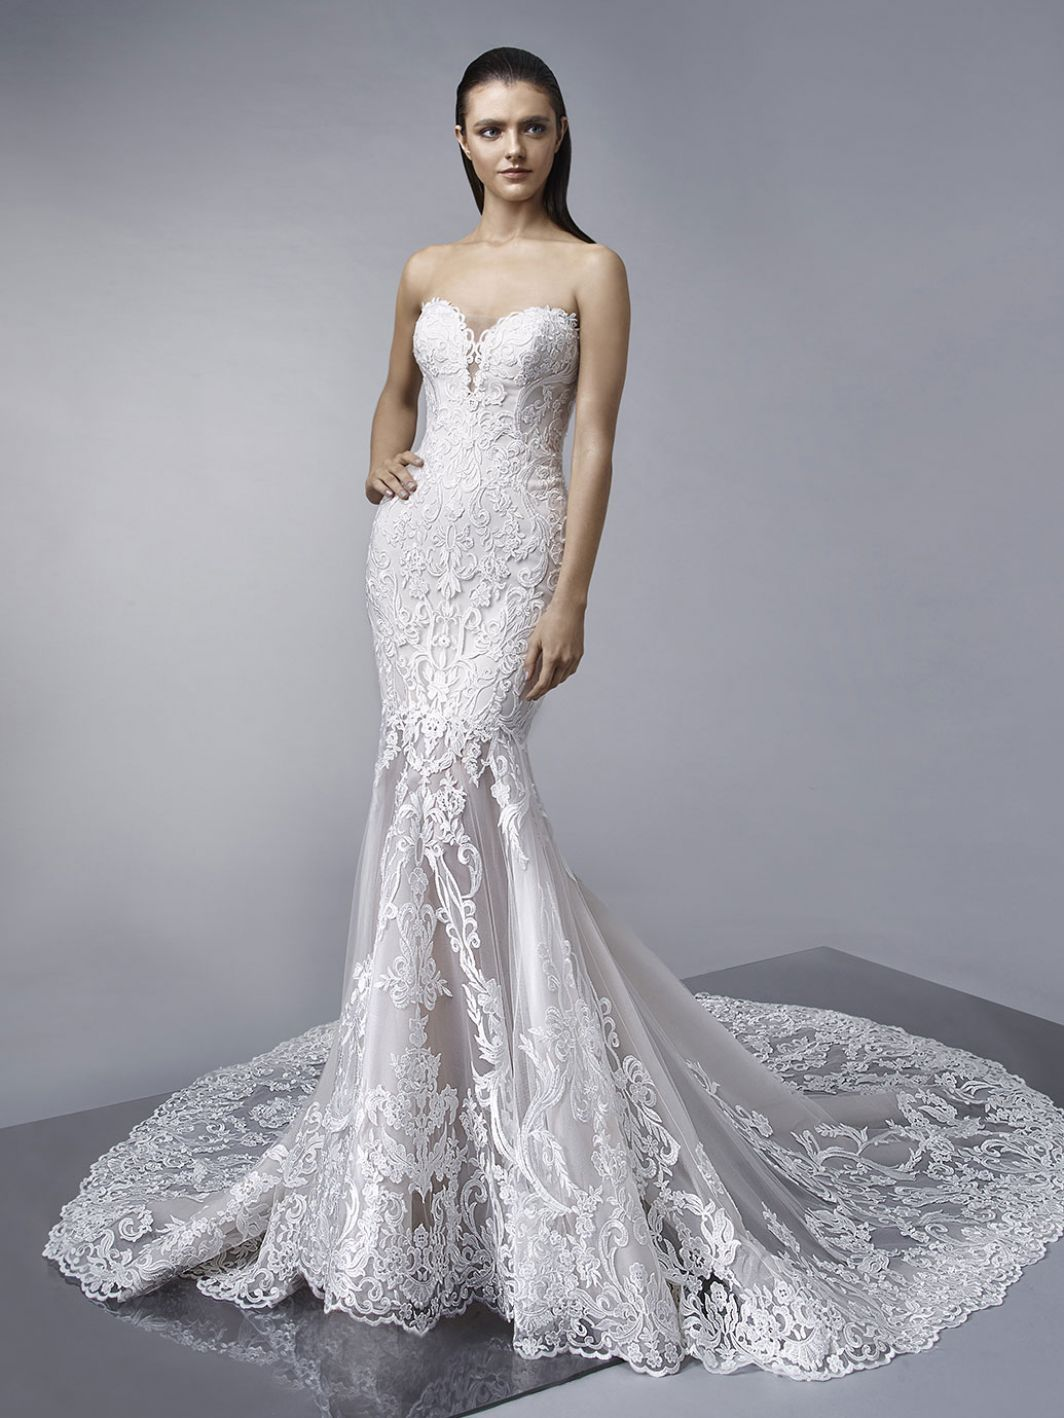 Pin by lauren parco on enzoani bridal gowns pinterest wedding